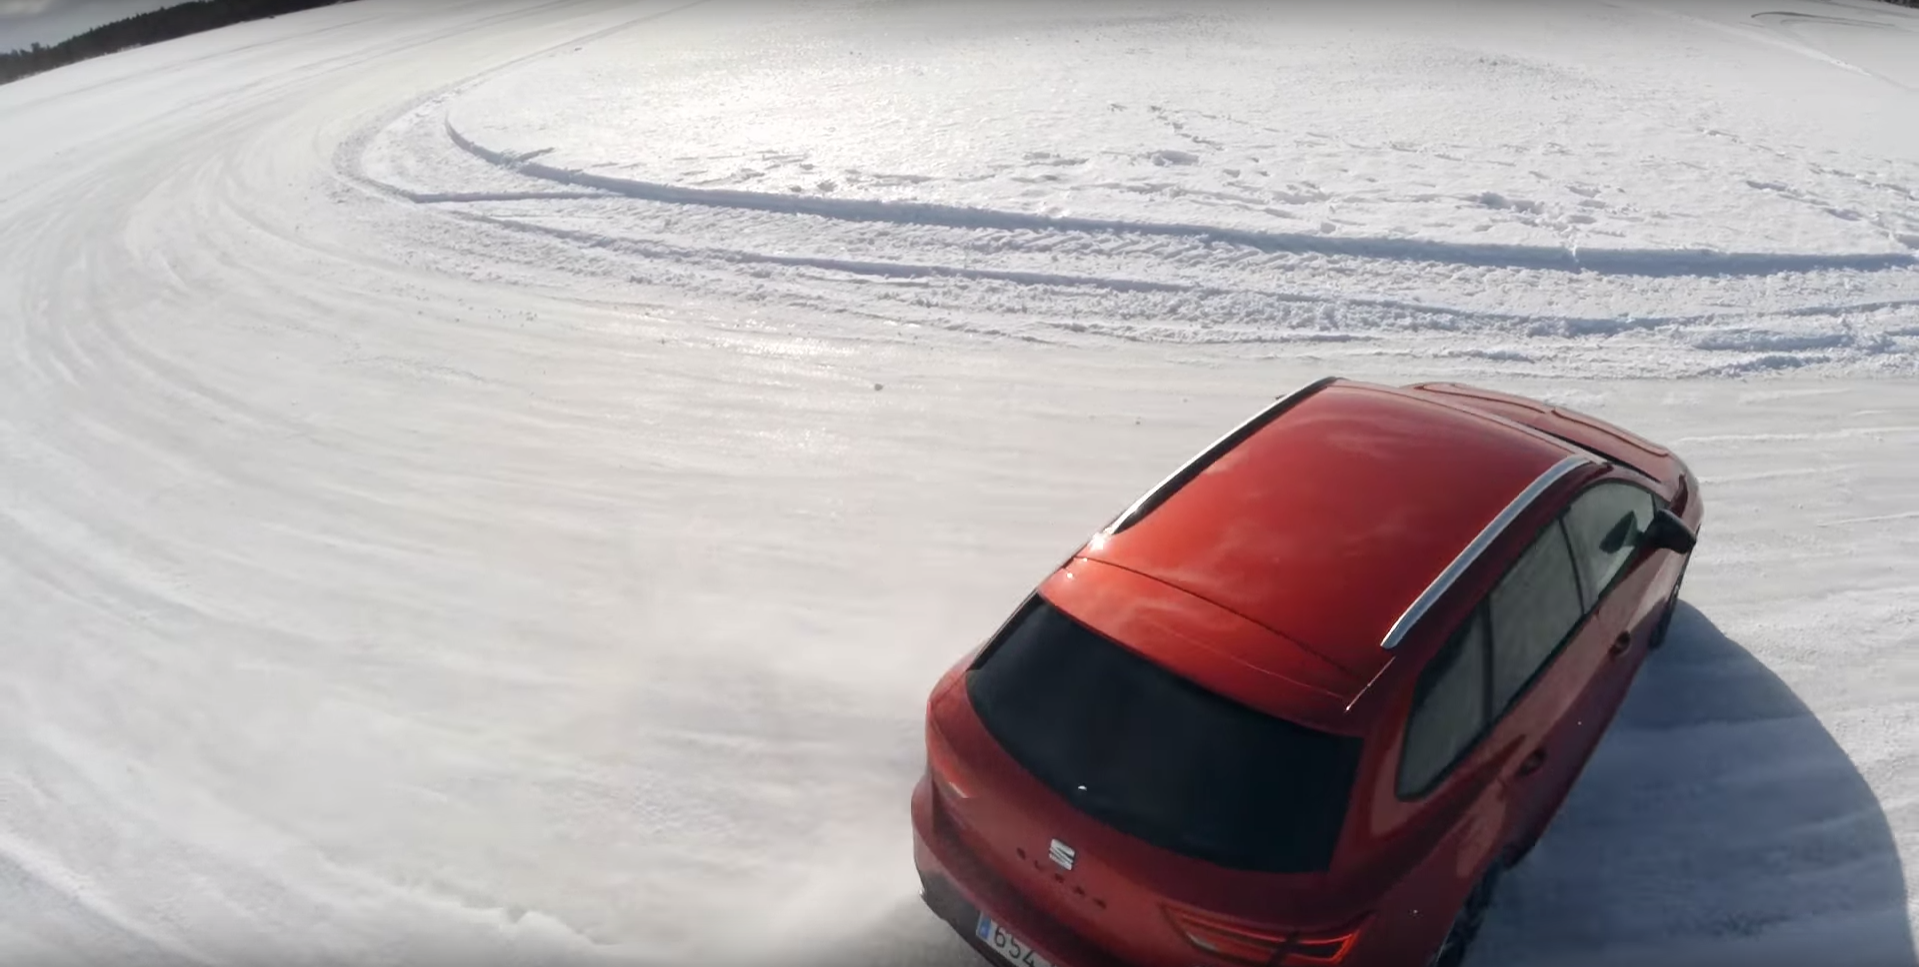 SEAT Ice Driving - A stunning content collaboration with SEAT for Men's Health.